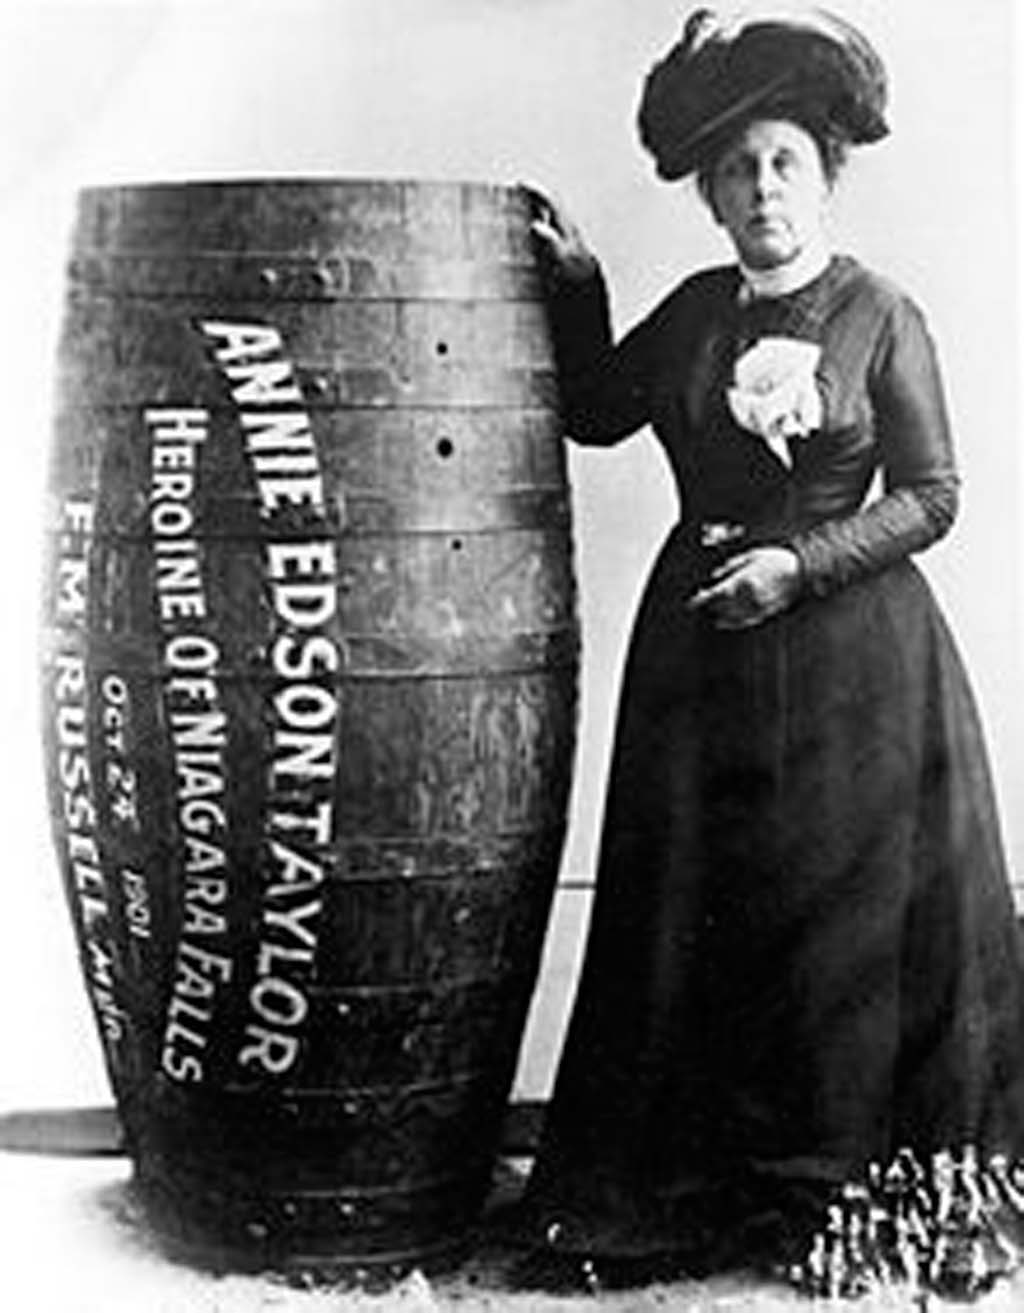 annie-edson-taylor-the-first-person-to-survive-going-over-the-niagara-falls-in-a-barrel-on-her-63rd-birthday-1901